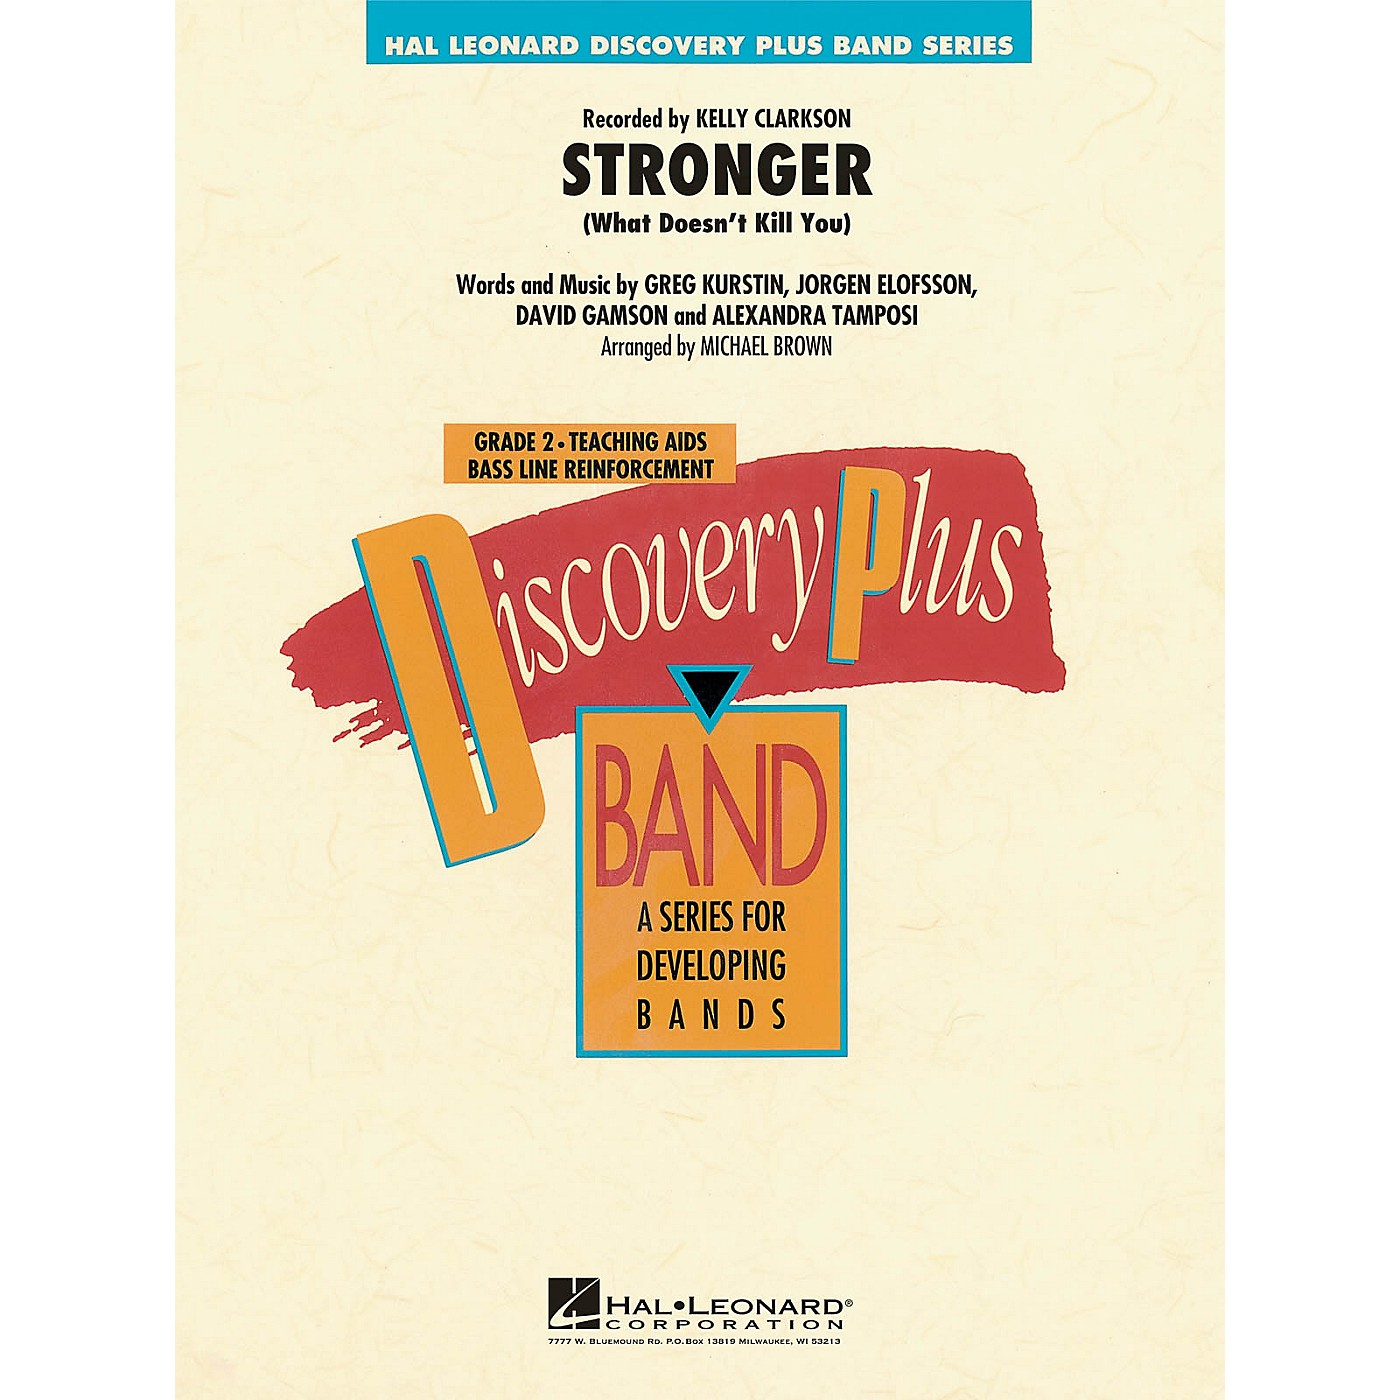 Hal Leonard Stronger (What Doesn't Kill You) - Discovery Plus Concert Band Series Level 2 arranged by Michael Brown thumbnail